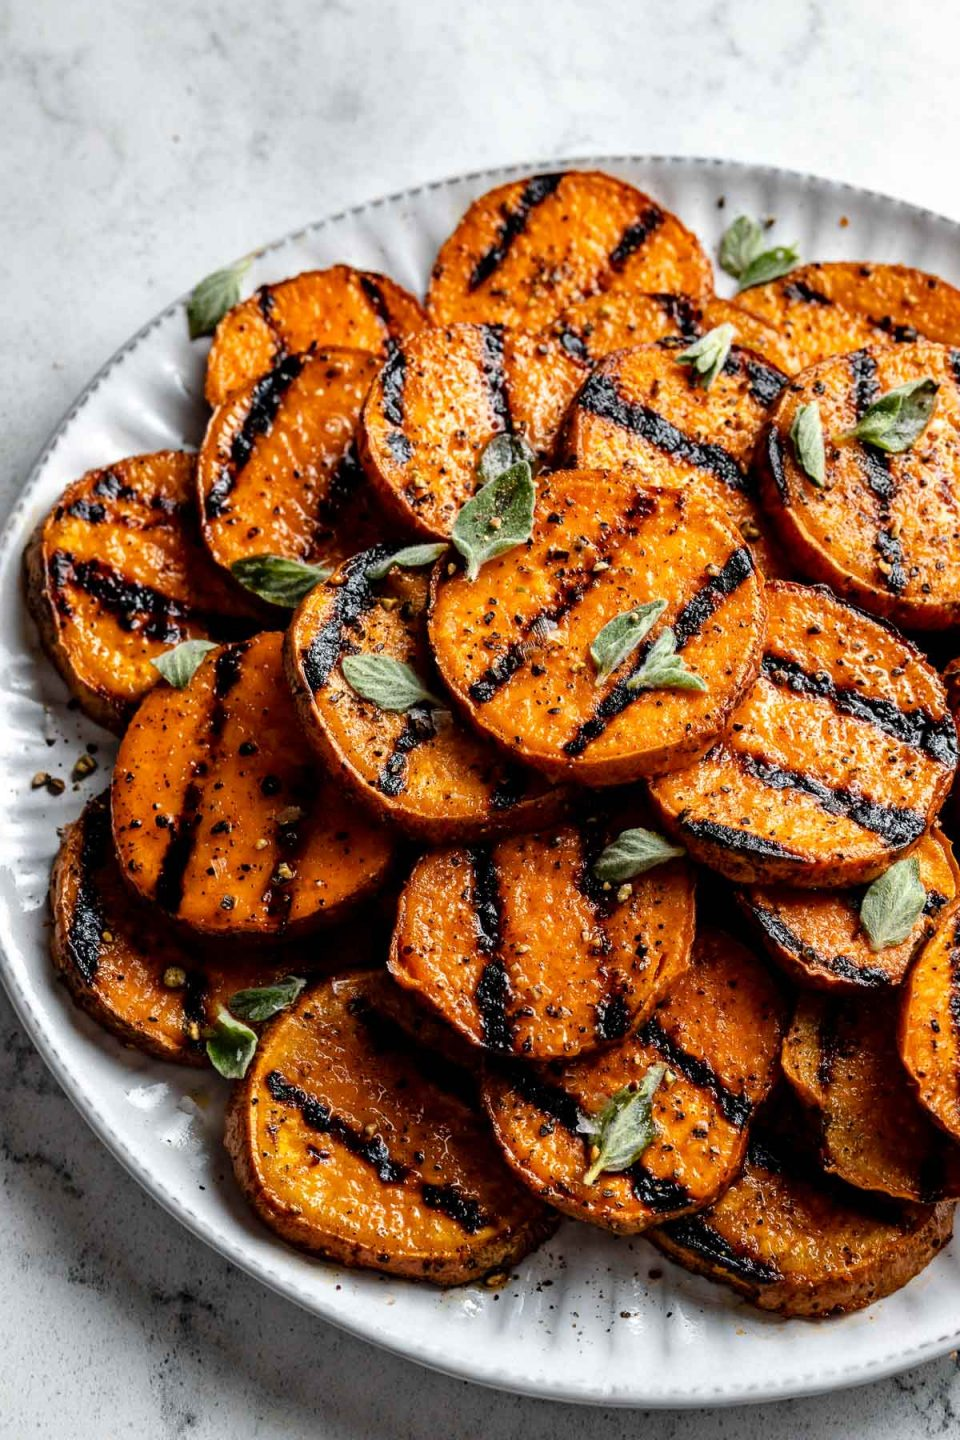 Grilled sweet potato sliced in rounds with char marks are arranged on a white ceramic plate. The sweet potato slices are garnished with ground black pepper, kosher salt, & fresh herbs. The plate sits on top of a white & gray marble surface.